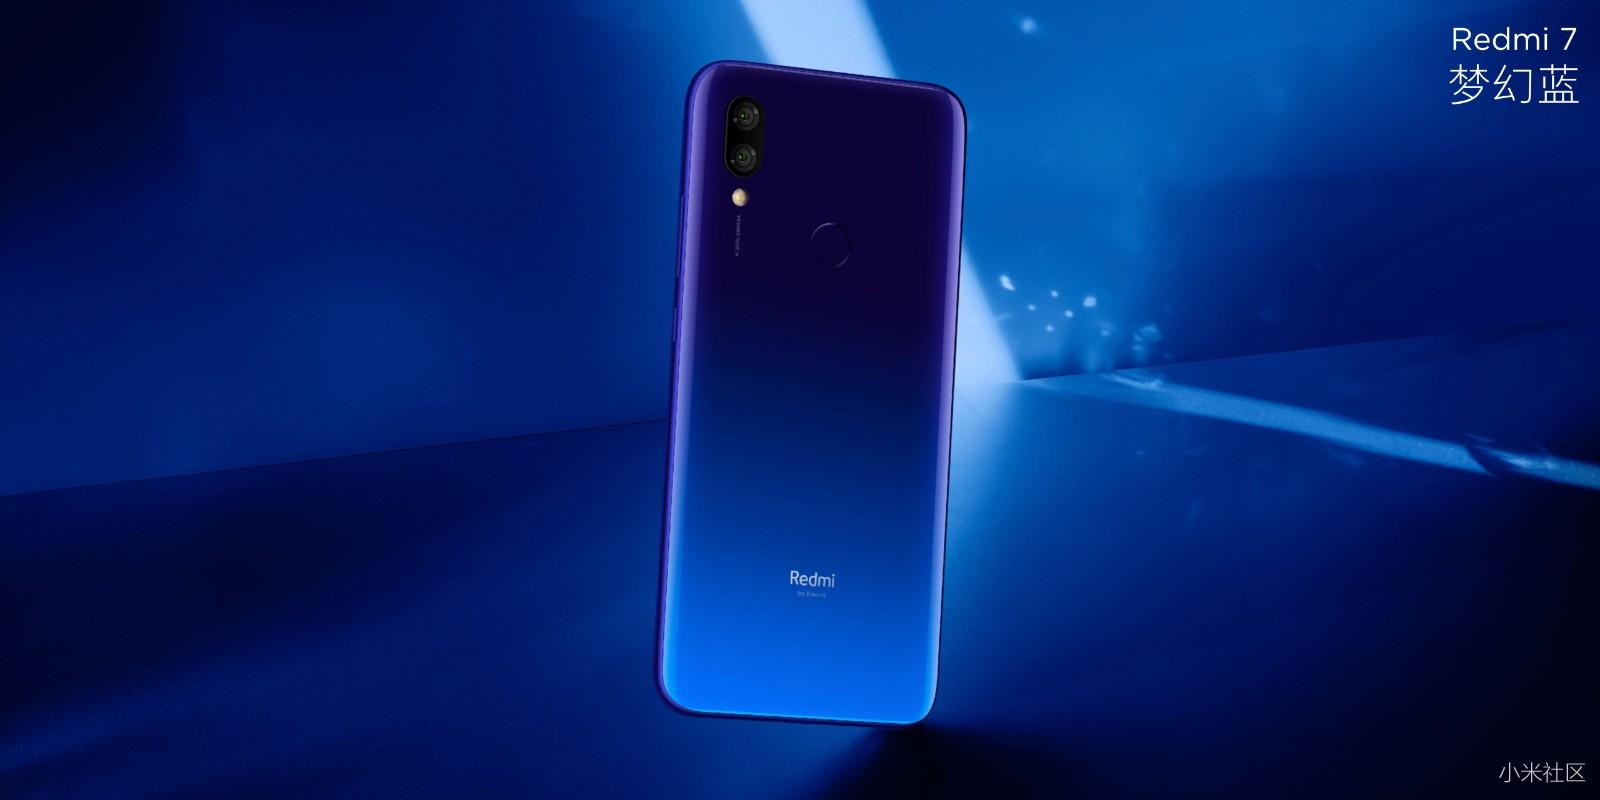 Redmi 7 launched in China with Snapdragon 632 & dual cameras